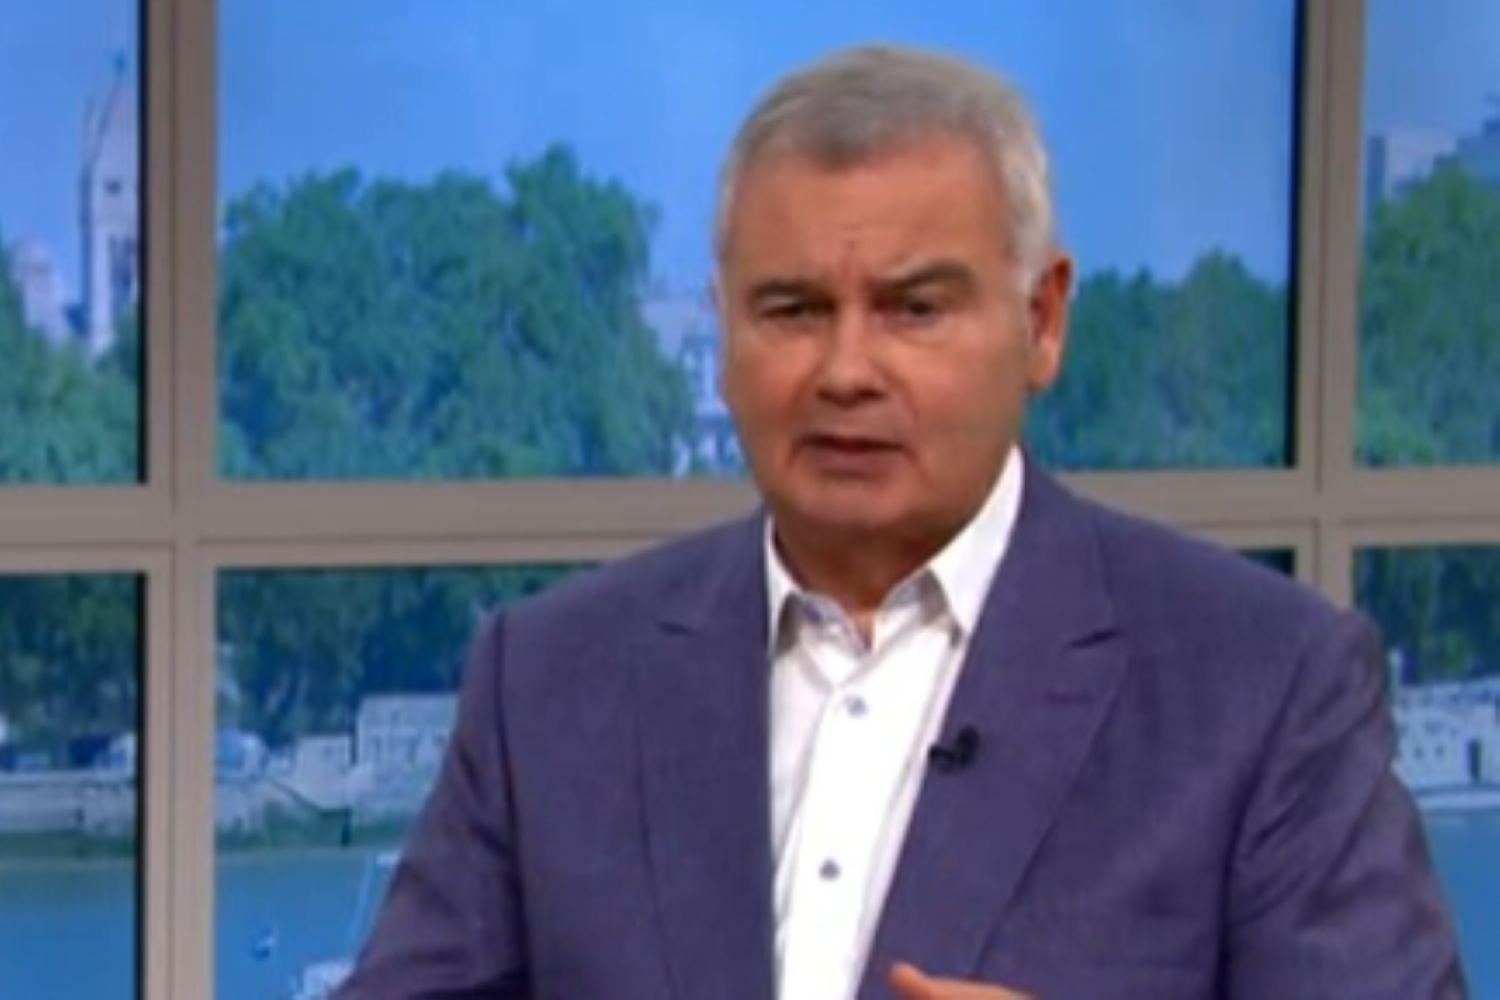 This Morning viewers baffled by Eamonn Holmes' trainers